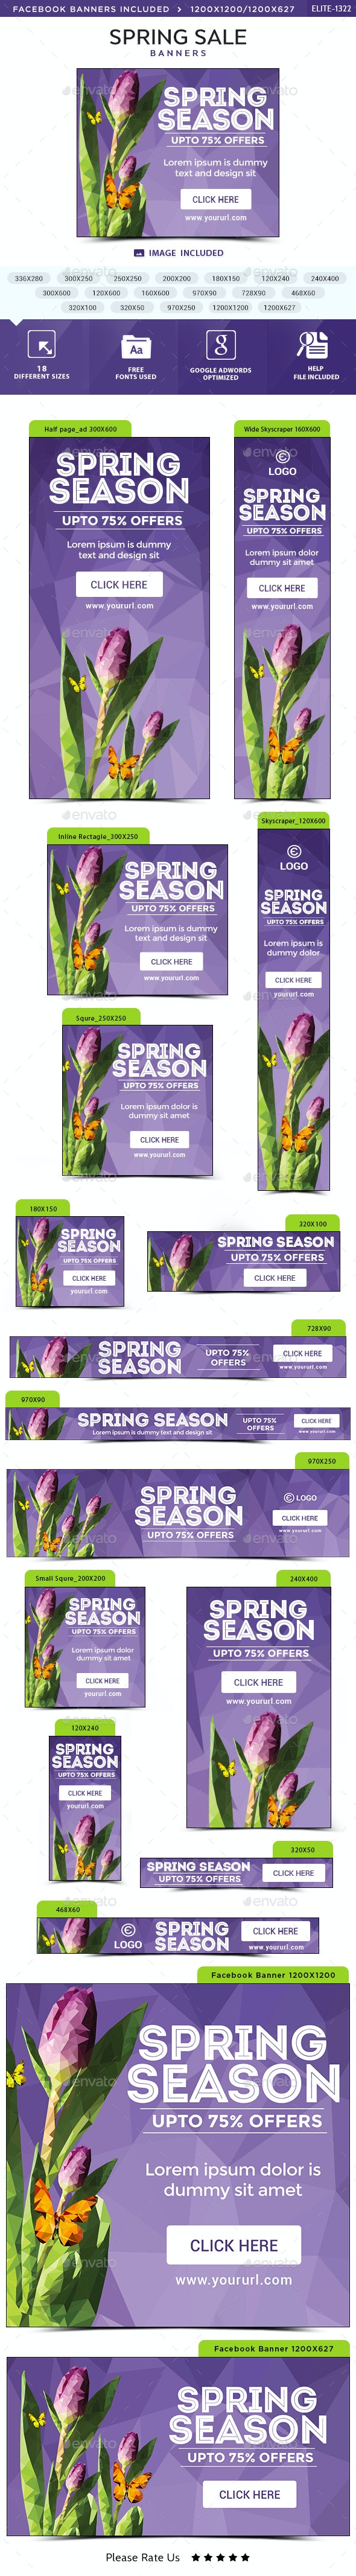 Spring Season Banners - Banners & Ads Web Elements